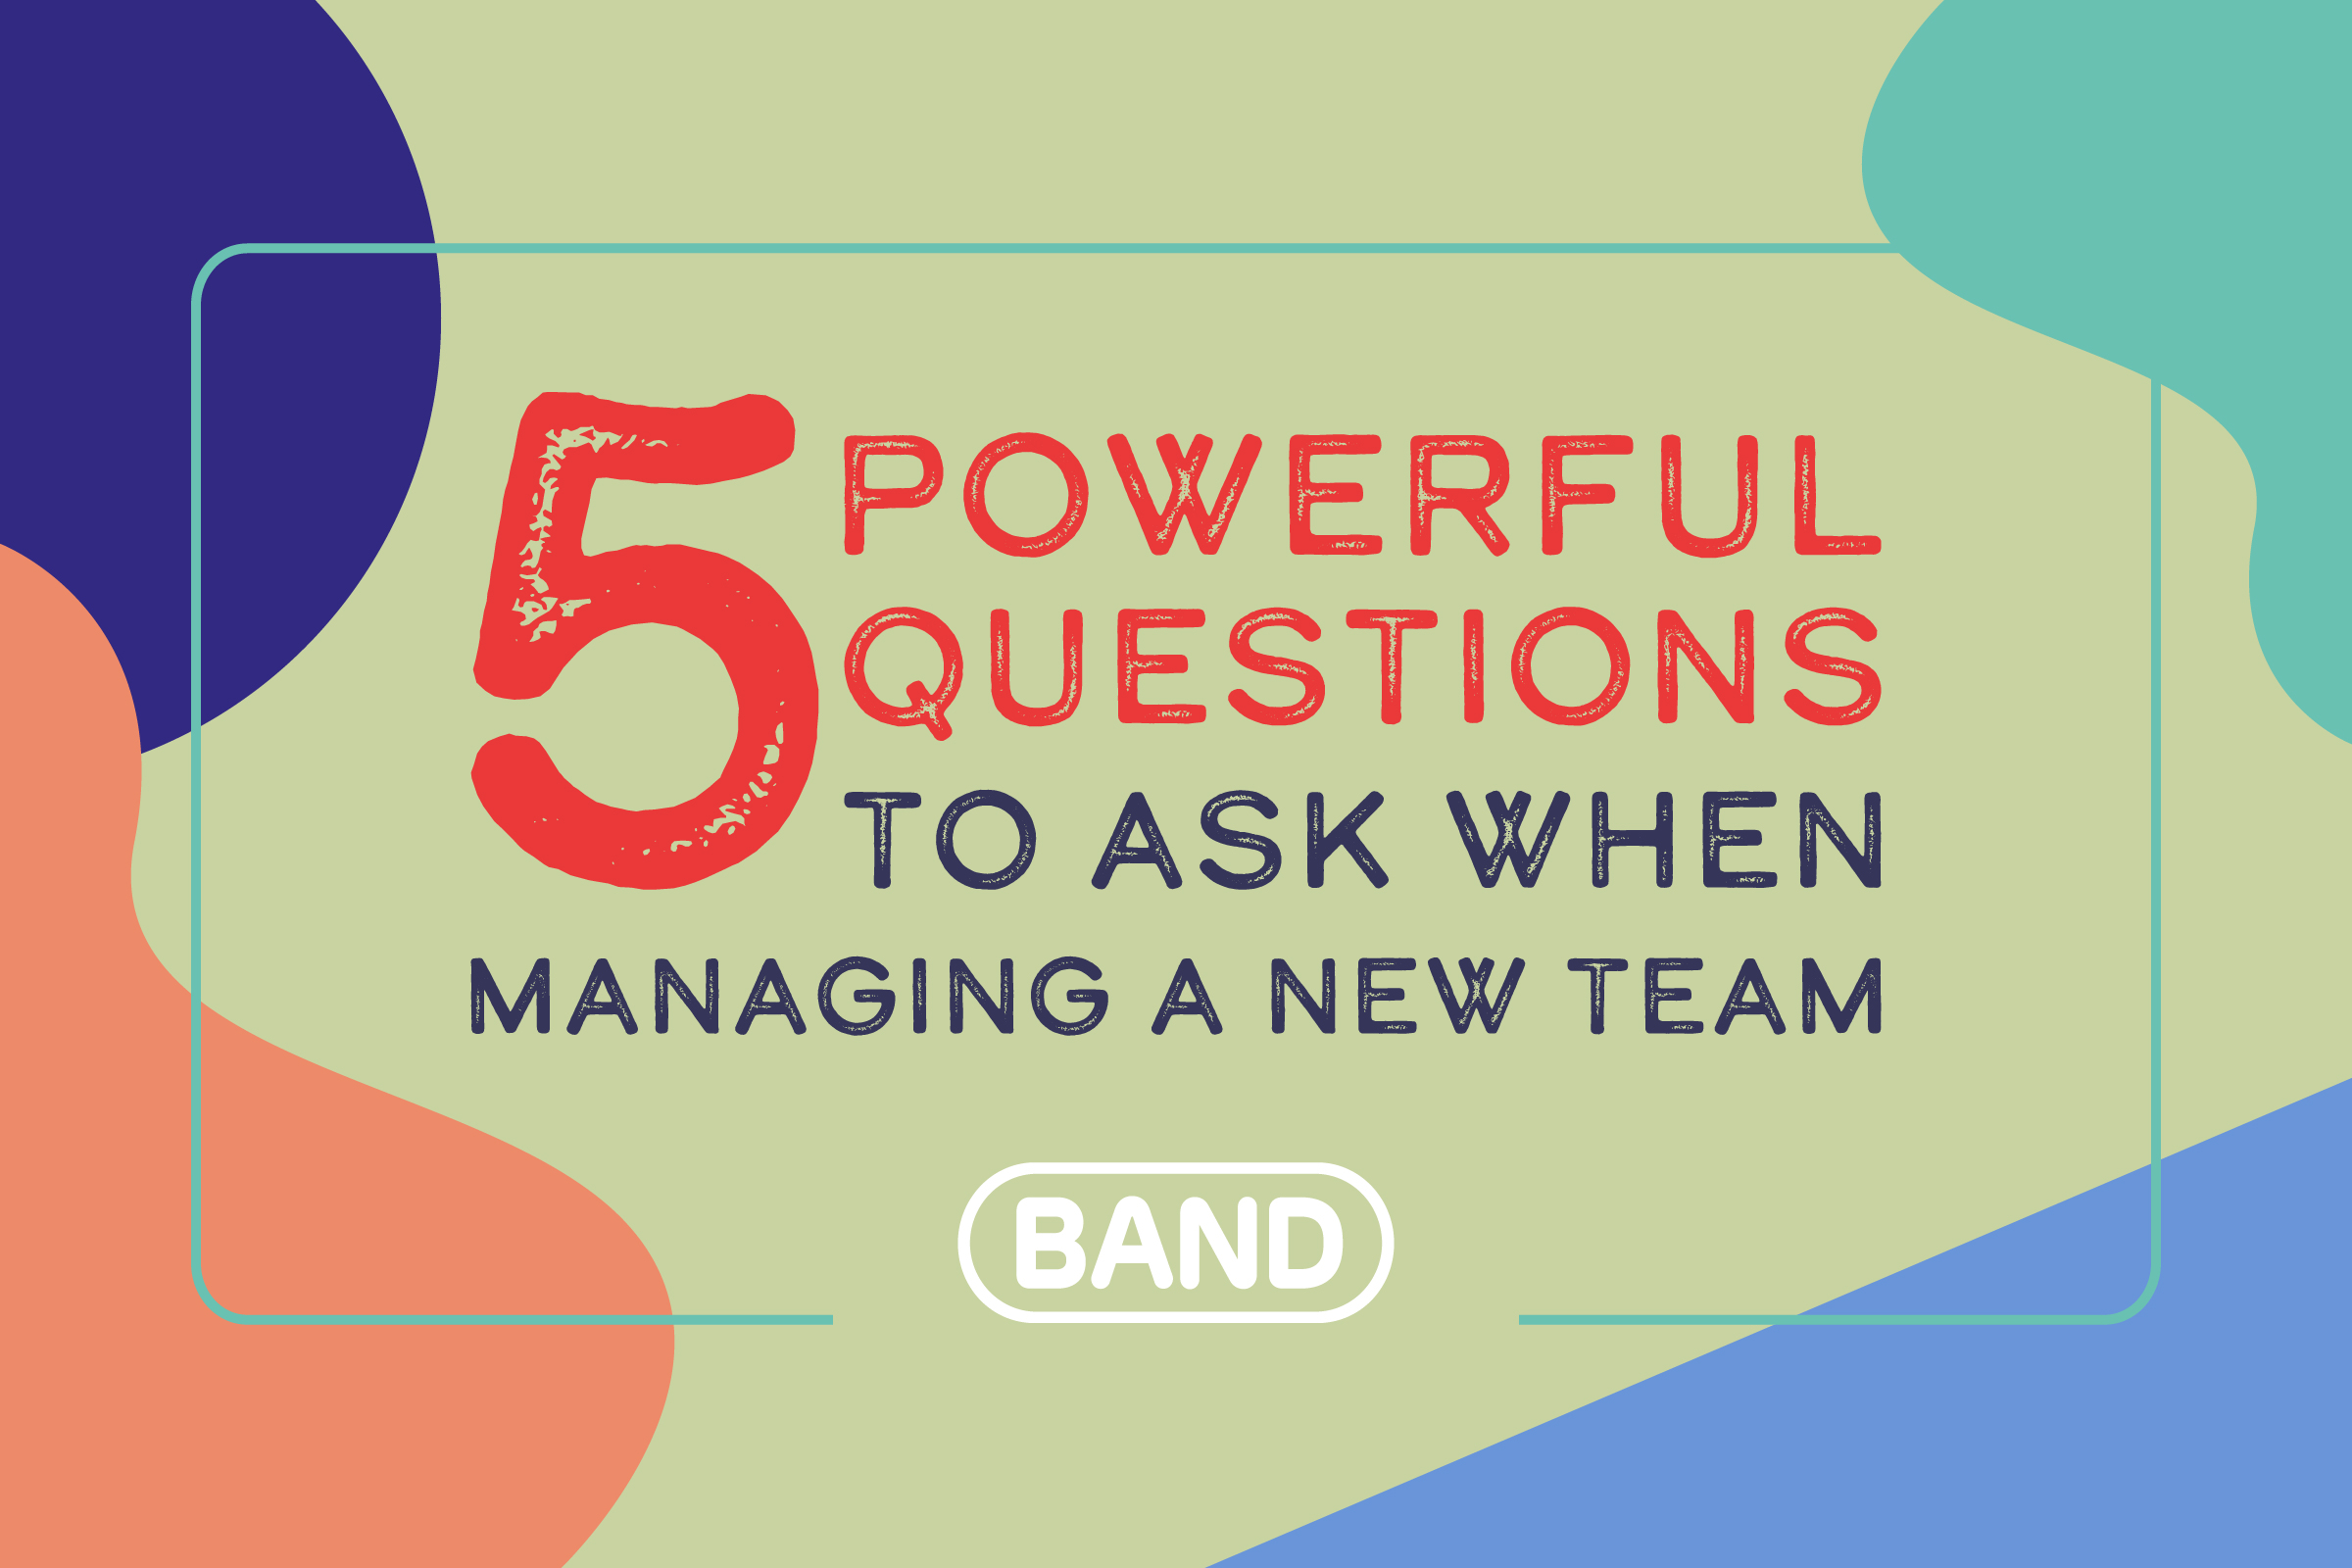 5 Powerful Questions to Ask When Managing a New Team